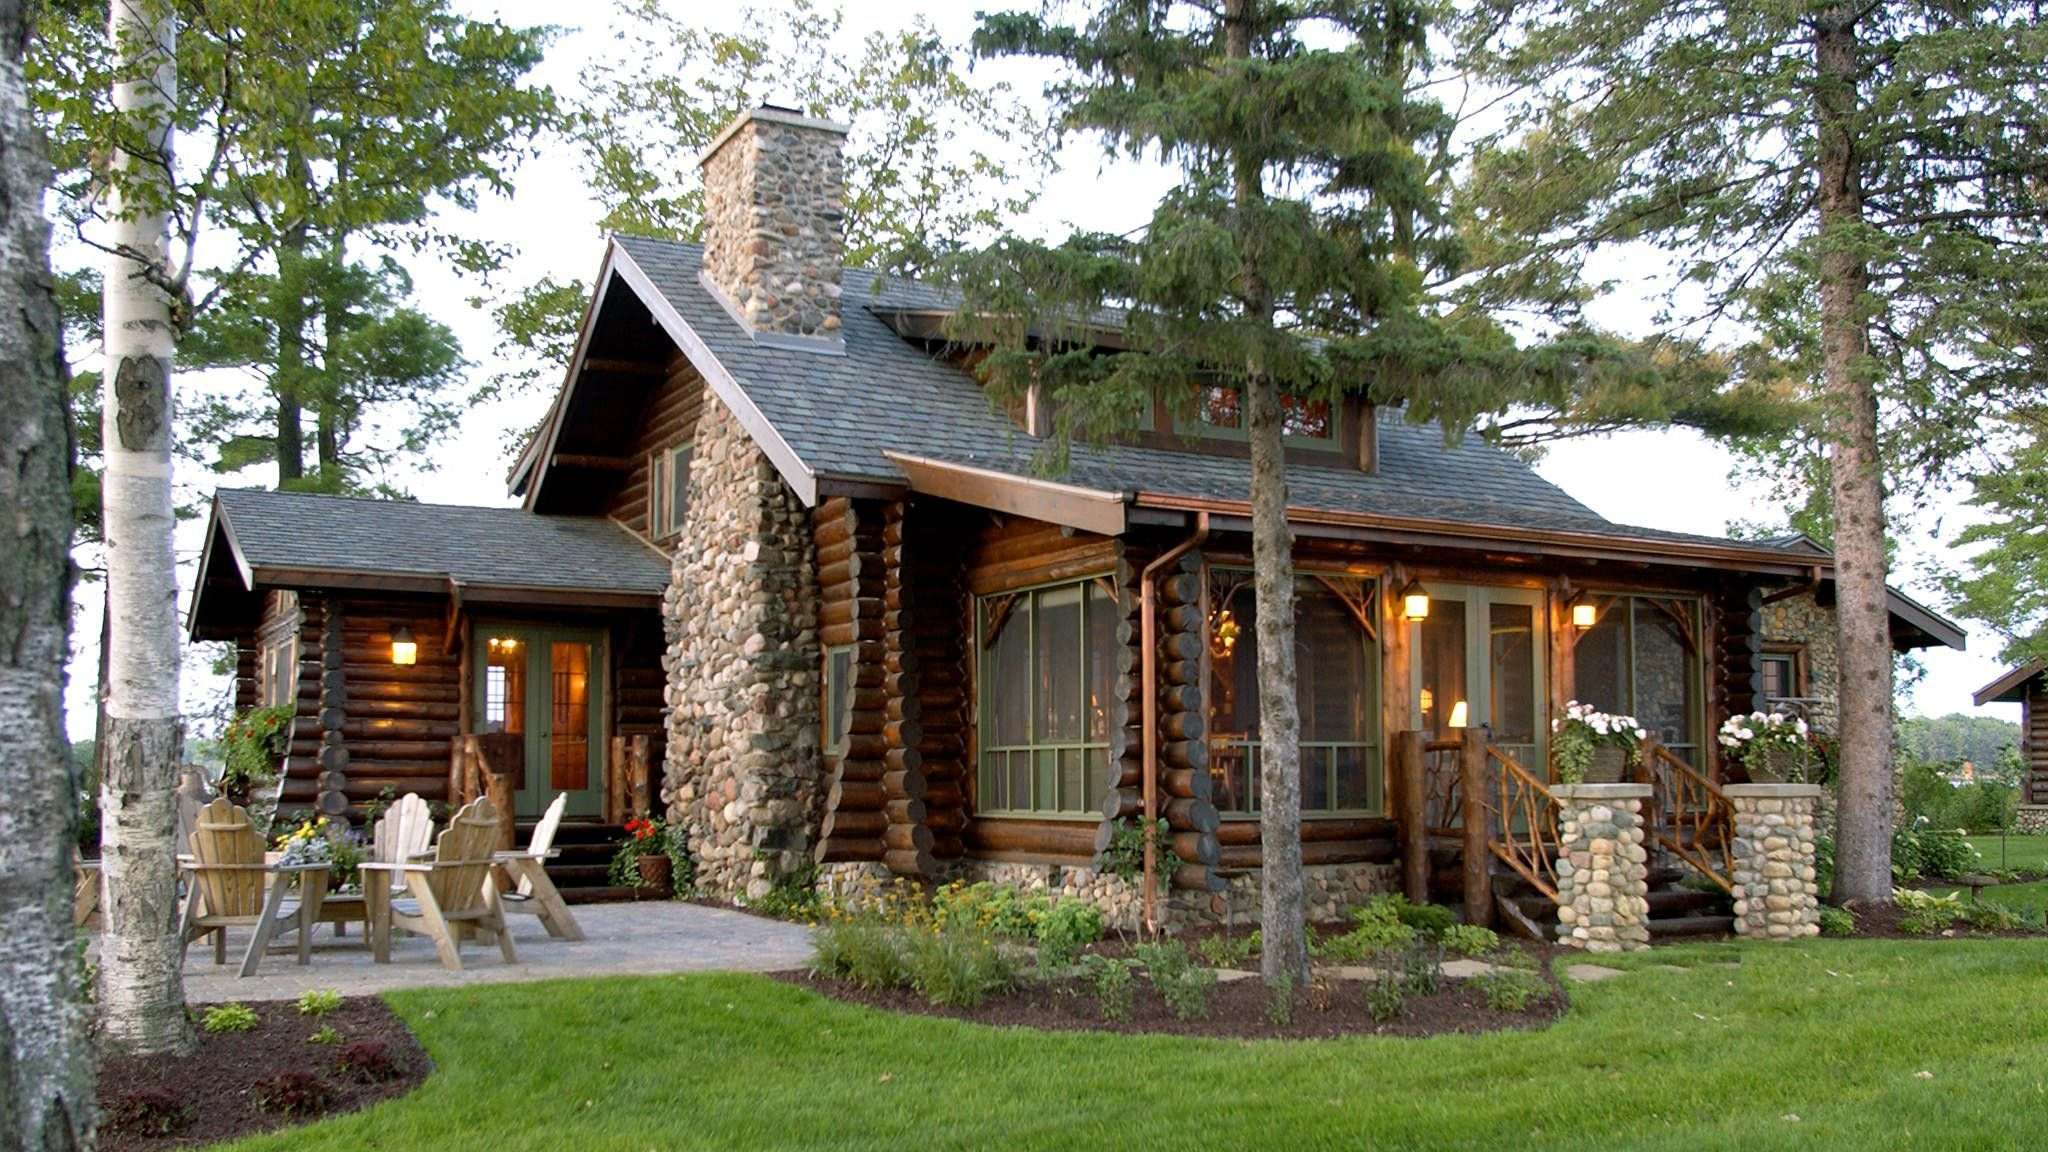 ely winter cabin info log rental interior sale mn to onlinechange private minnesota in cabins rent for